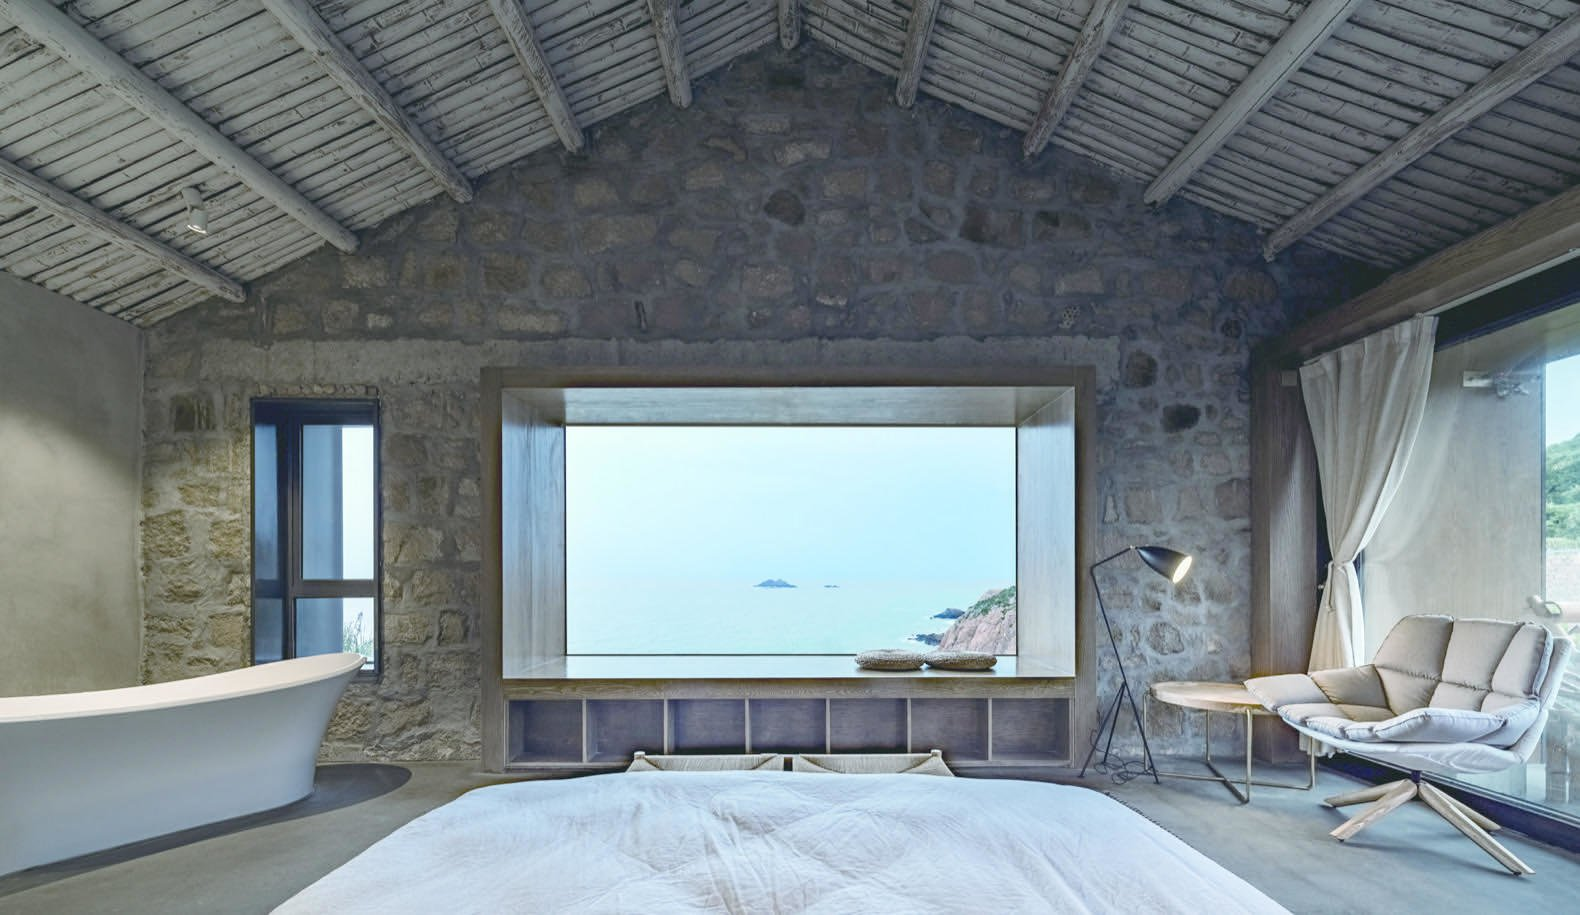 the-master-bedroom-overlooks-panoramic-views-of-the-east-china-sea